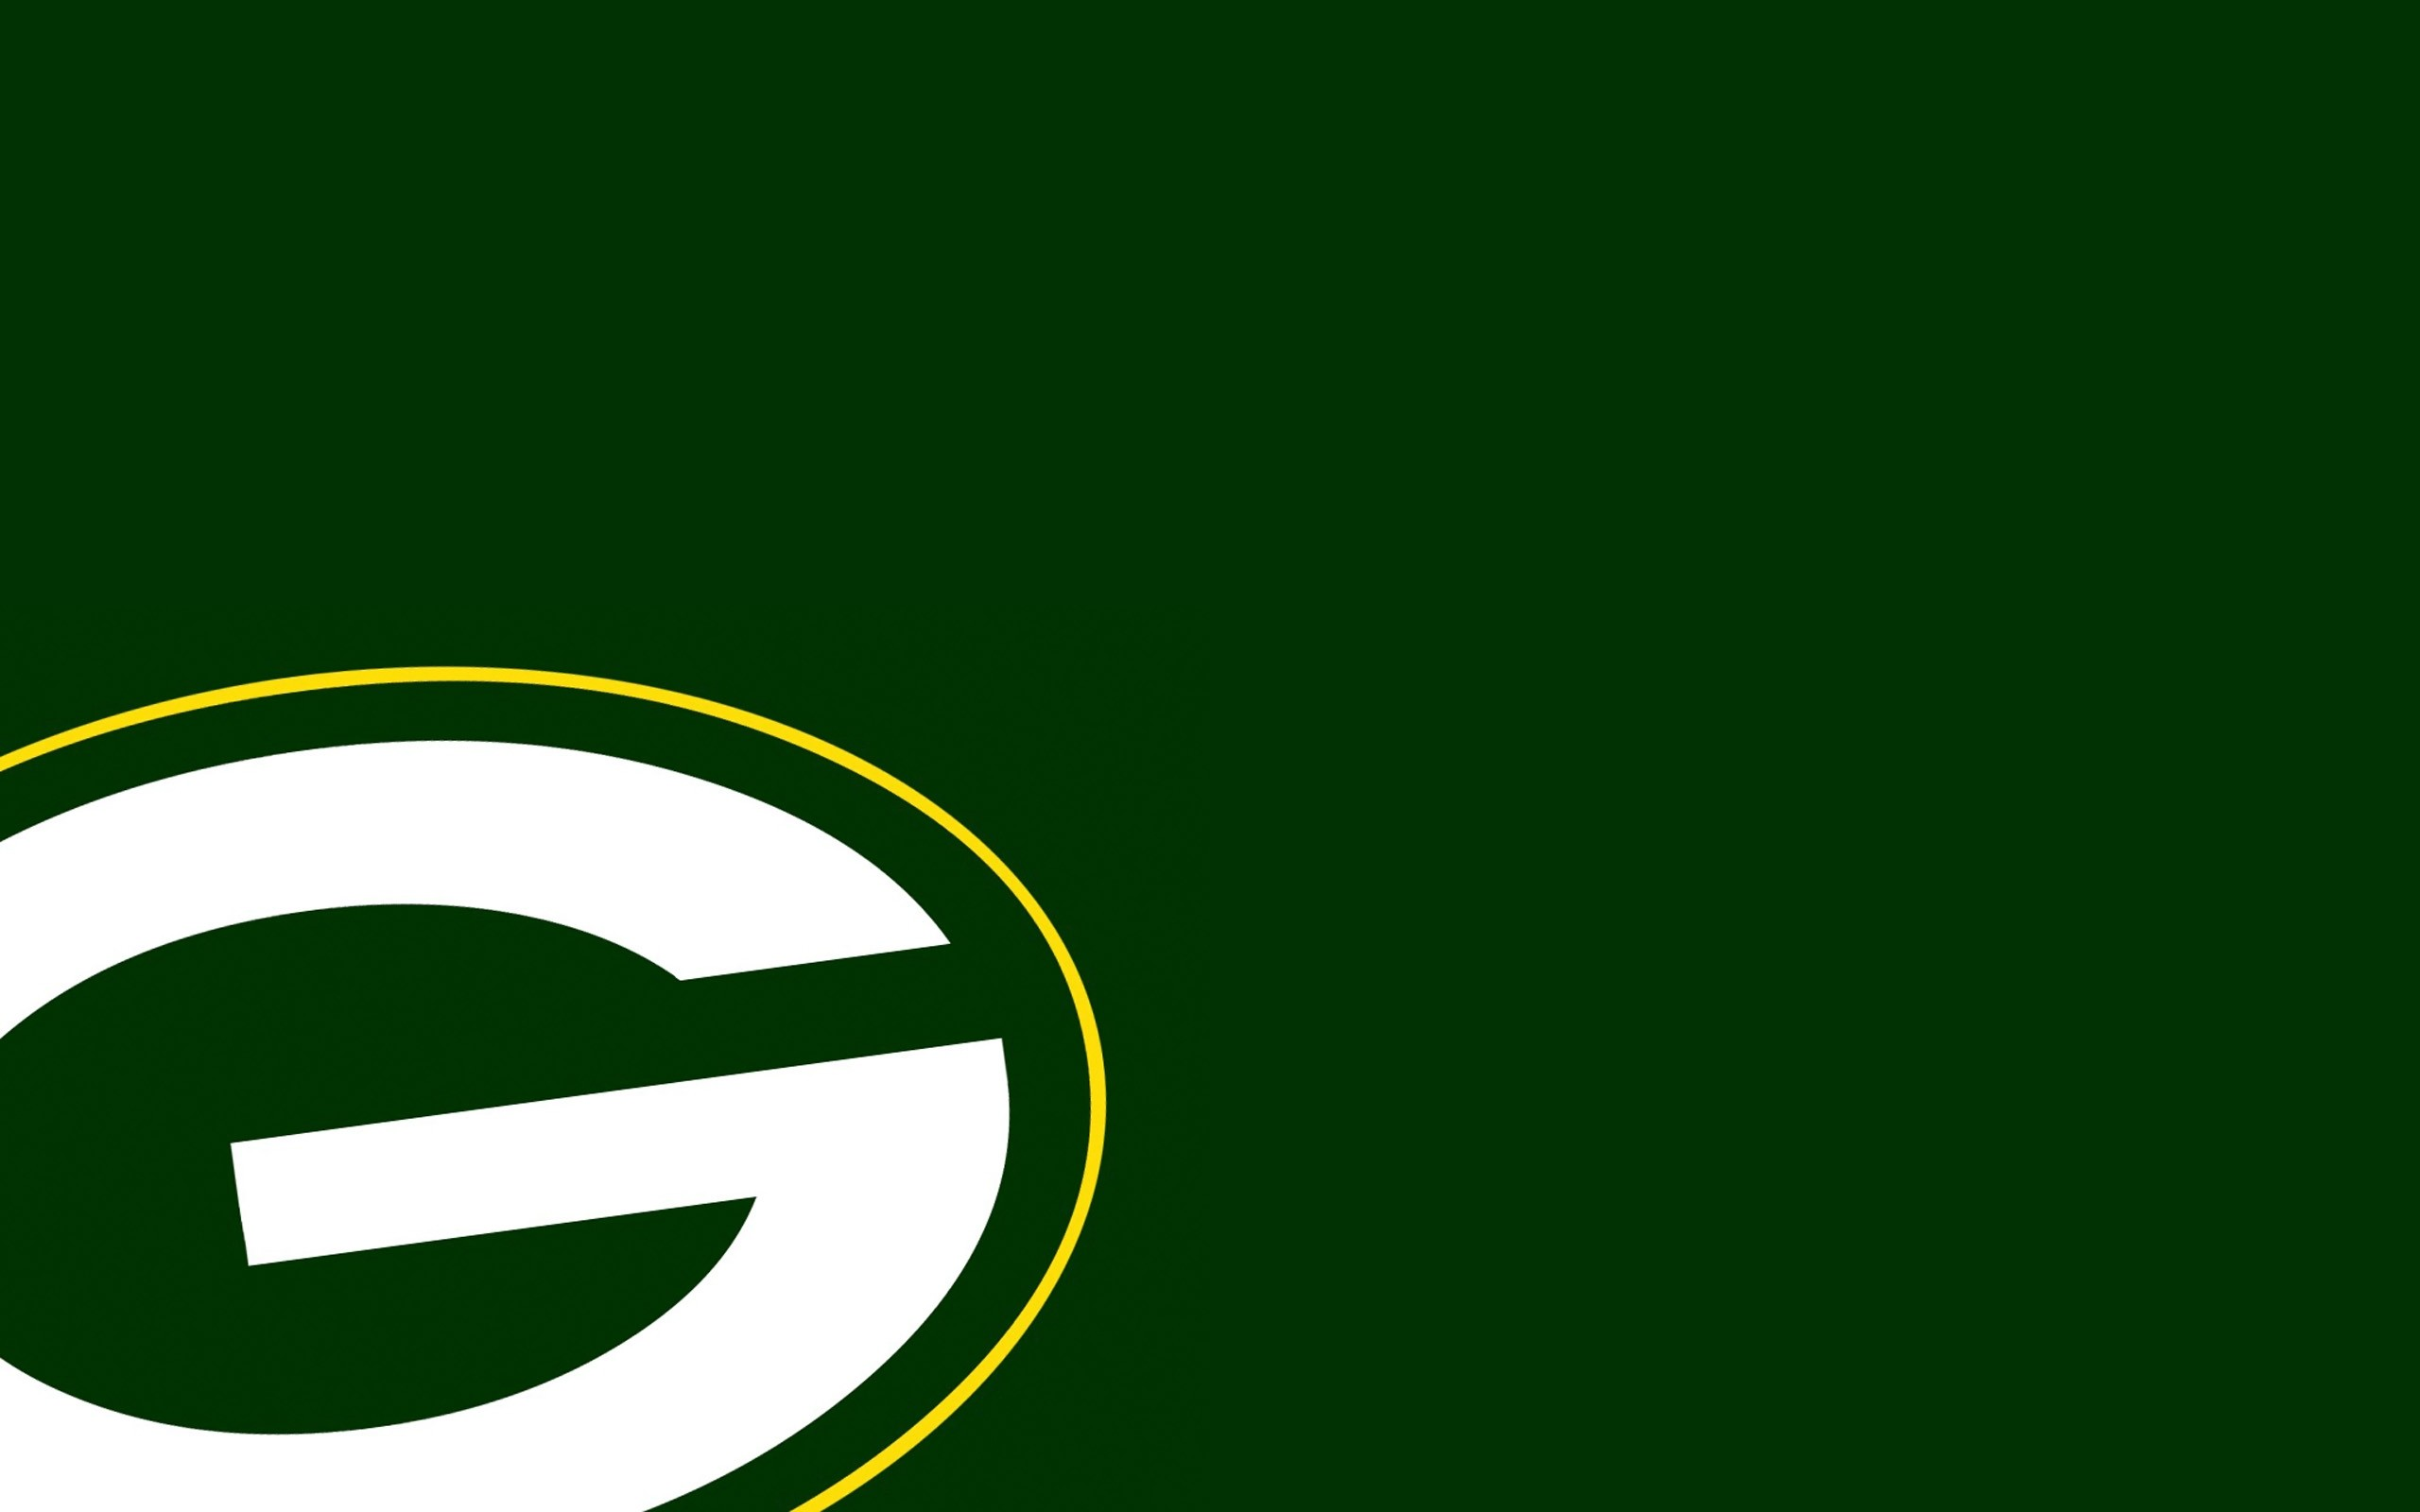 Green Bay Packers Wallpaper (65+ Images